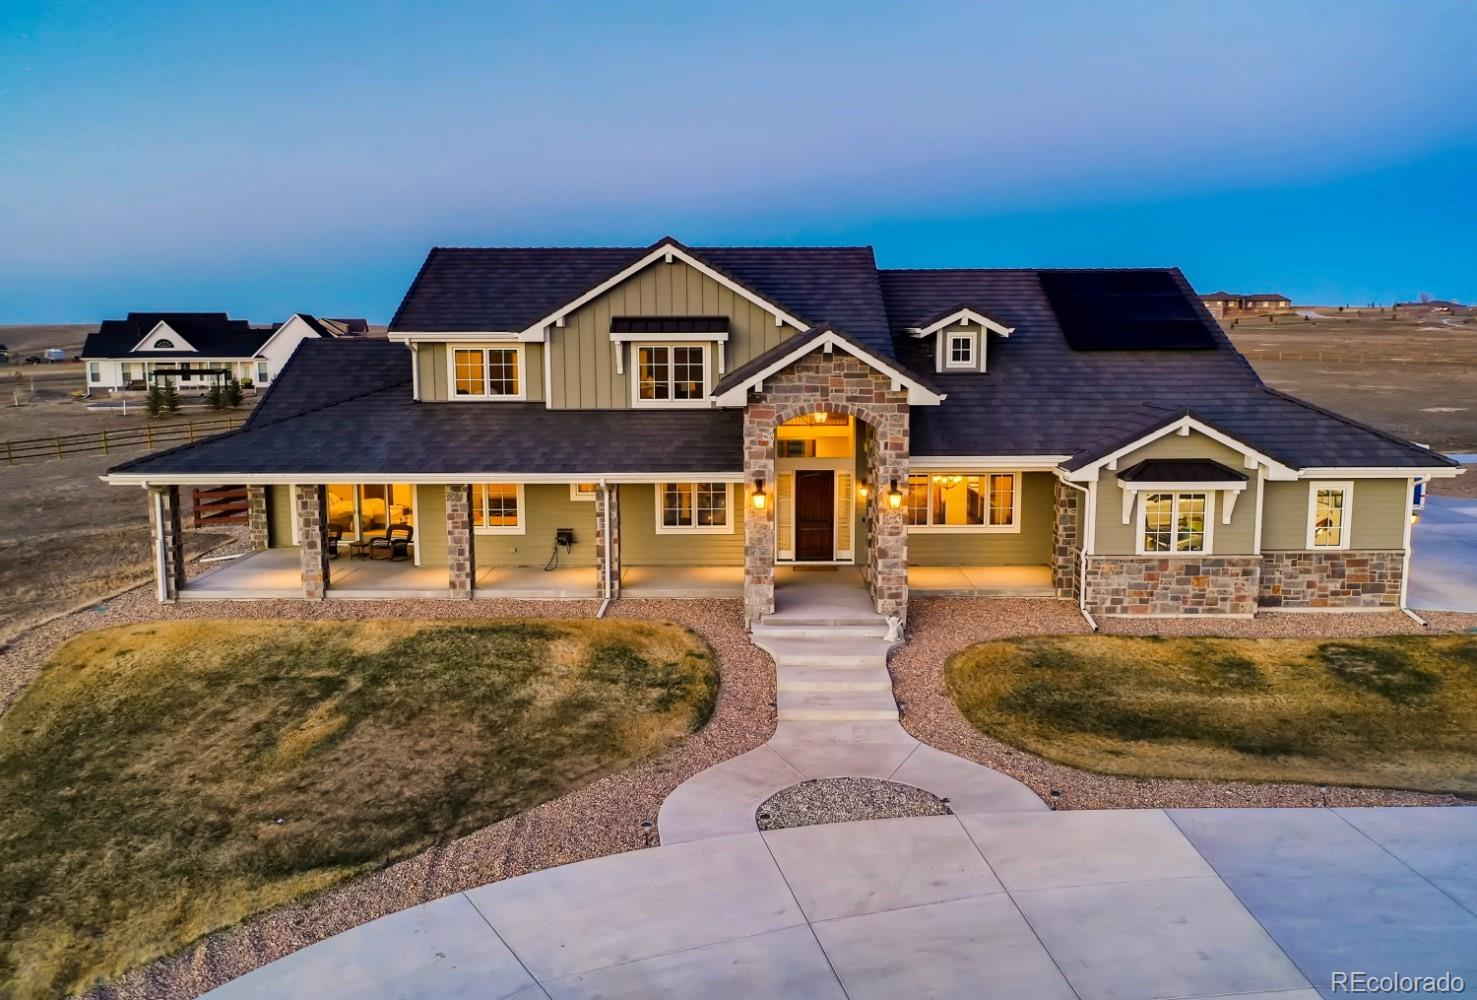 Step inside the epitome of Colorado living! This absolutely gorgeous home is strategically located on 5 full acres, with unobstructed views of the Rocky Mountains, including Pikes Peak. As you enter this breathtaking, one of a kind, custom built residence, you will notice that no detail has been missed. The grand entrance is completely open to the second floor allowing for natural light to flood through this elegant space. As you continue through this open floor plan concept, you cannot help but notice the stone fireplace that stretches from the floor to the ceiling. The decadent fixtures that were carefully chosen are simply cherries on top of this spectacular home. The kitchen carries top of the line appliances such as a Sub Zero refrigerator, and Wolf stove. Not to mention a the Scotsman ice maker & Bosch dishwasher located in the butlers pantry. As you make your way through the rest of the main floor, you will notice 2 guest bedrooms, 3 bathrooms & the exquisite owners retreat. This space was specifically created for ultimate comfort! The fireplace will keep you cozy on cold snowy days & the heated bathroom floors will insure your toes stay equally as toasty. That is not even the best part, the owners retreat closet was crafted for royalty! It features display shelves and space for both partners. The second floor houses two additional bedrooms and baths, to go along with another washer & dryer. As you make your way to the basement, be prepared to be awed. This areas comes finished with an extensive storage area, theater room, full bar, wine cellar, safe room & direct stairwell to the garage. This space is sure to be one of your favorites! As you make your way outside, you will be blown away by the amount of garage space comfortably accommodating 4 cars. The outbuilding is extraordinary with limitless possibilities, including a car lift. The solar panels are paid in full! A custom home such as this does not come along often. Welcome to your Colorado Dream!